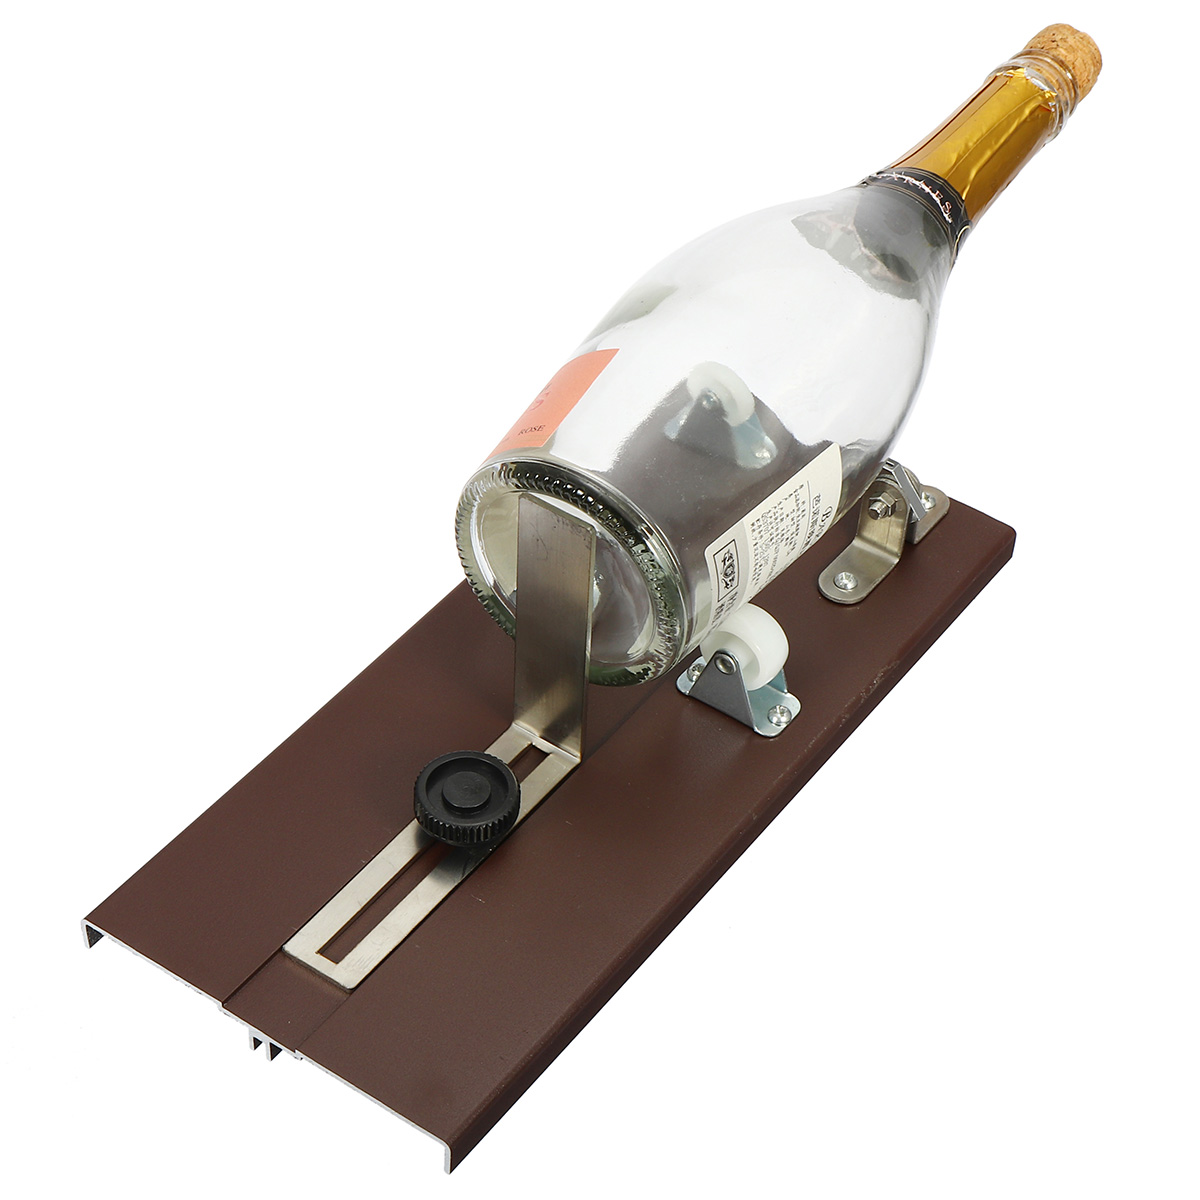 Glass Beer Wine Bottle Jar Cutter Scoring Machine Cutting Tool Kit DIY Crafting